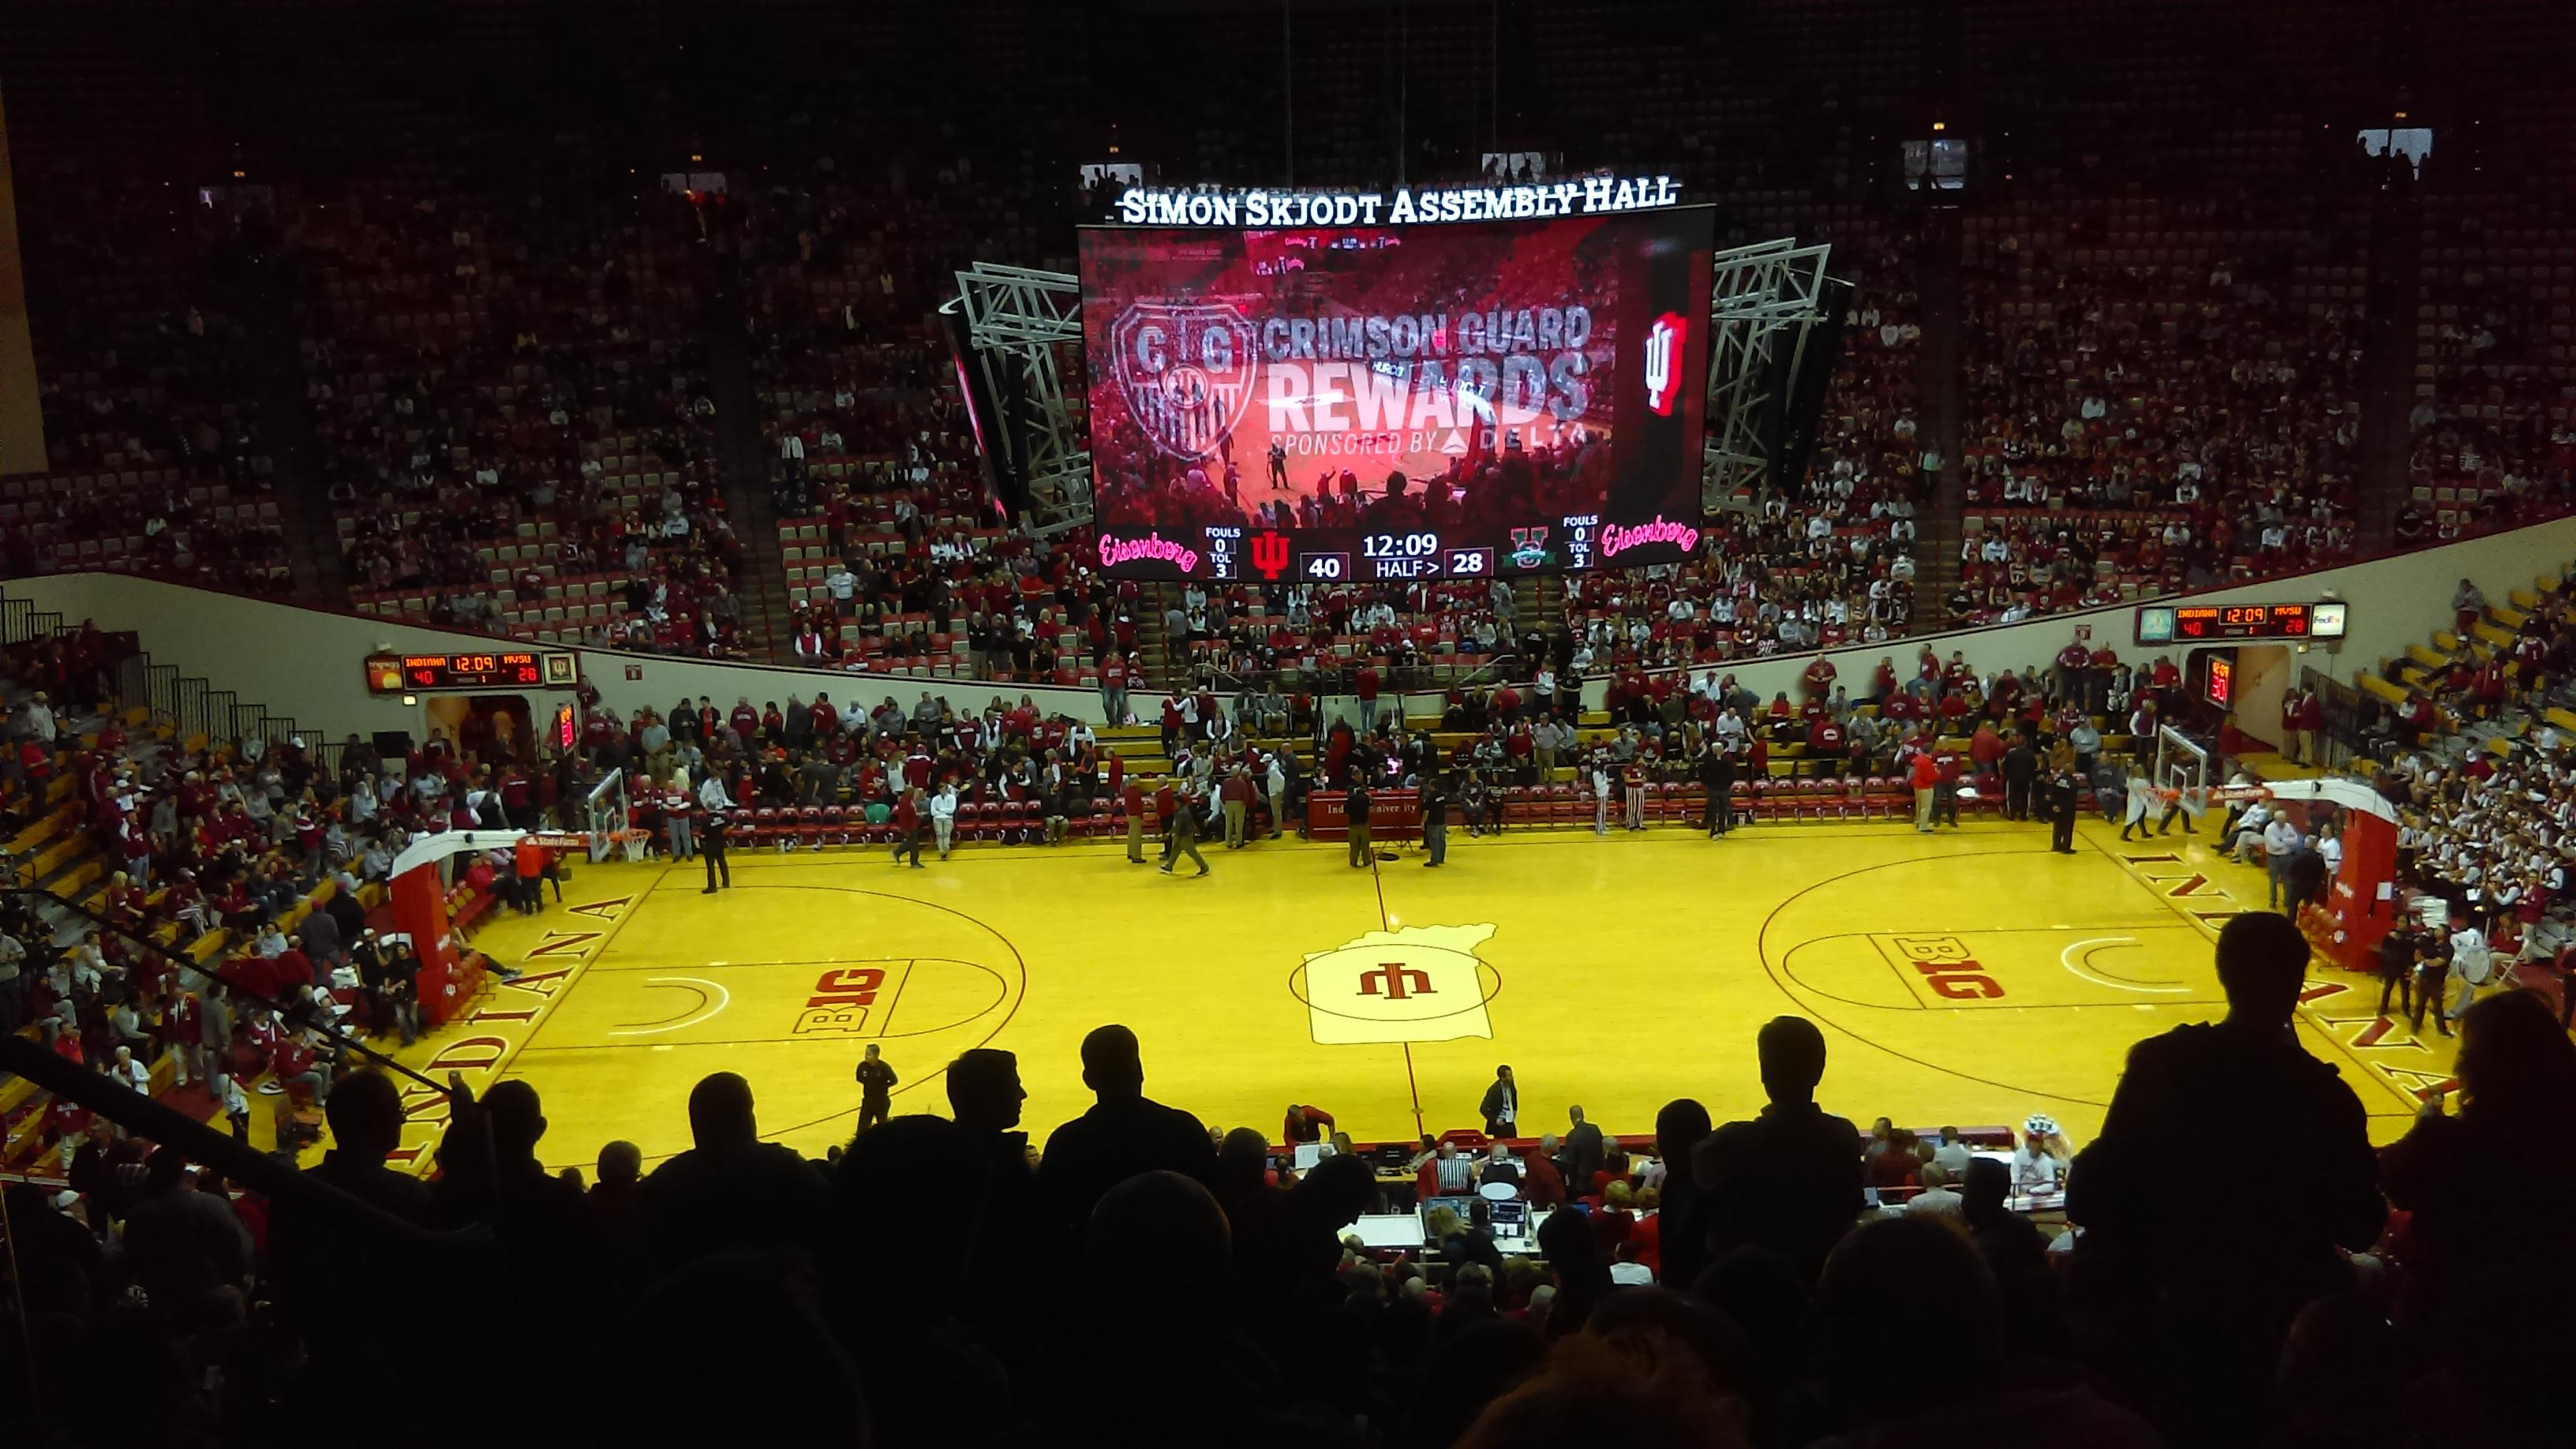 Assembly Hall (Bloomington) Section D Row 29 Seat 4